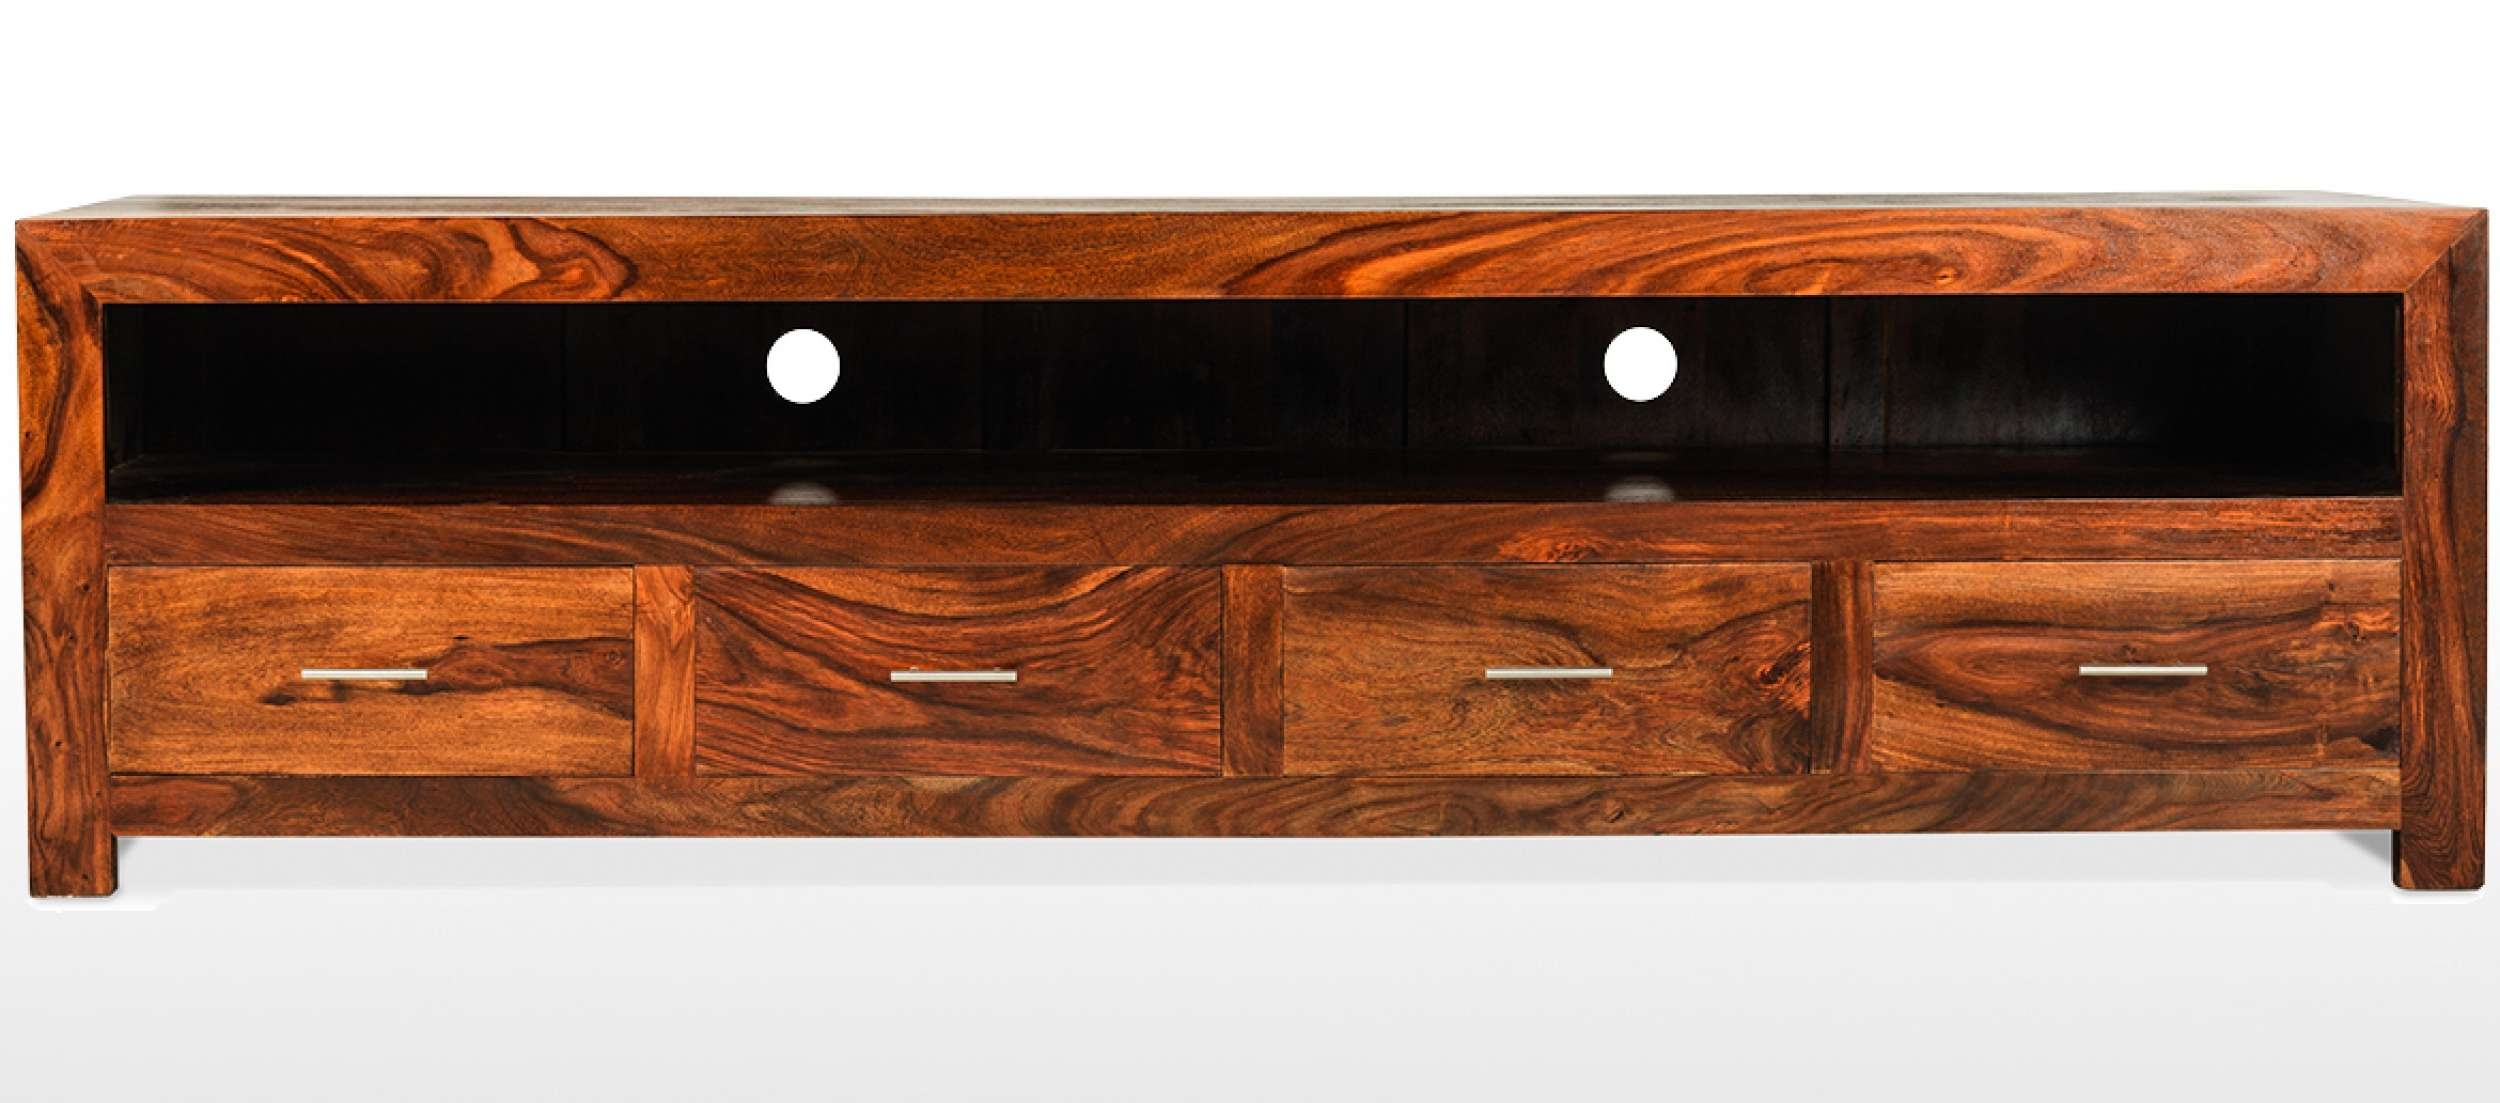 Cube Sheesham Long Plasma Tv Cabinet | Quercus Living Regarding Wide Tv Cabinets (View 6 of 20)